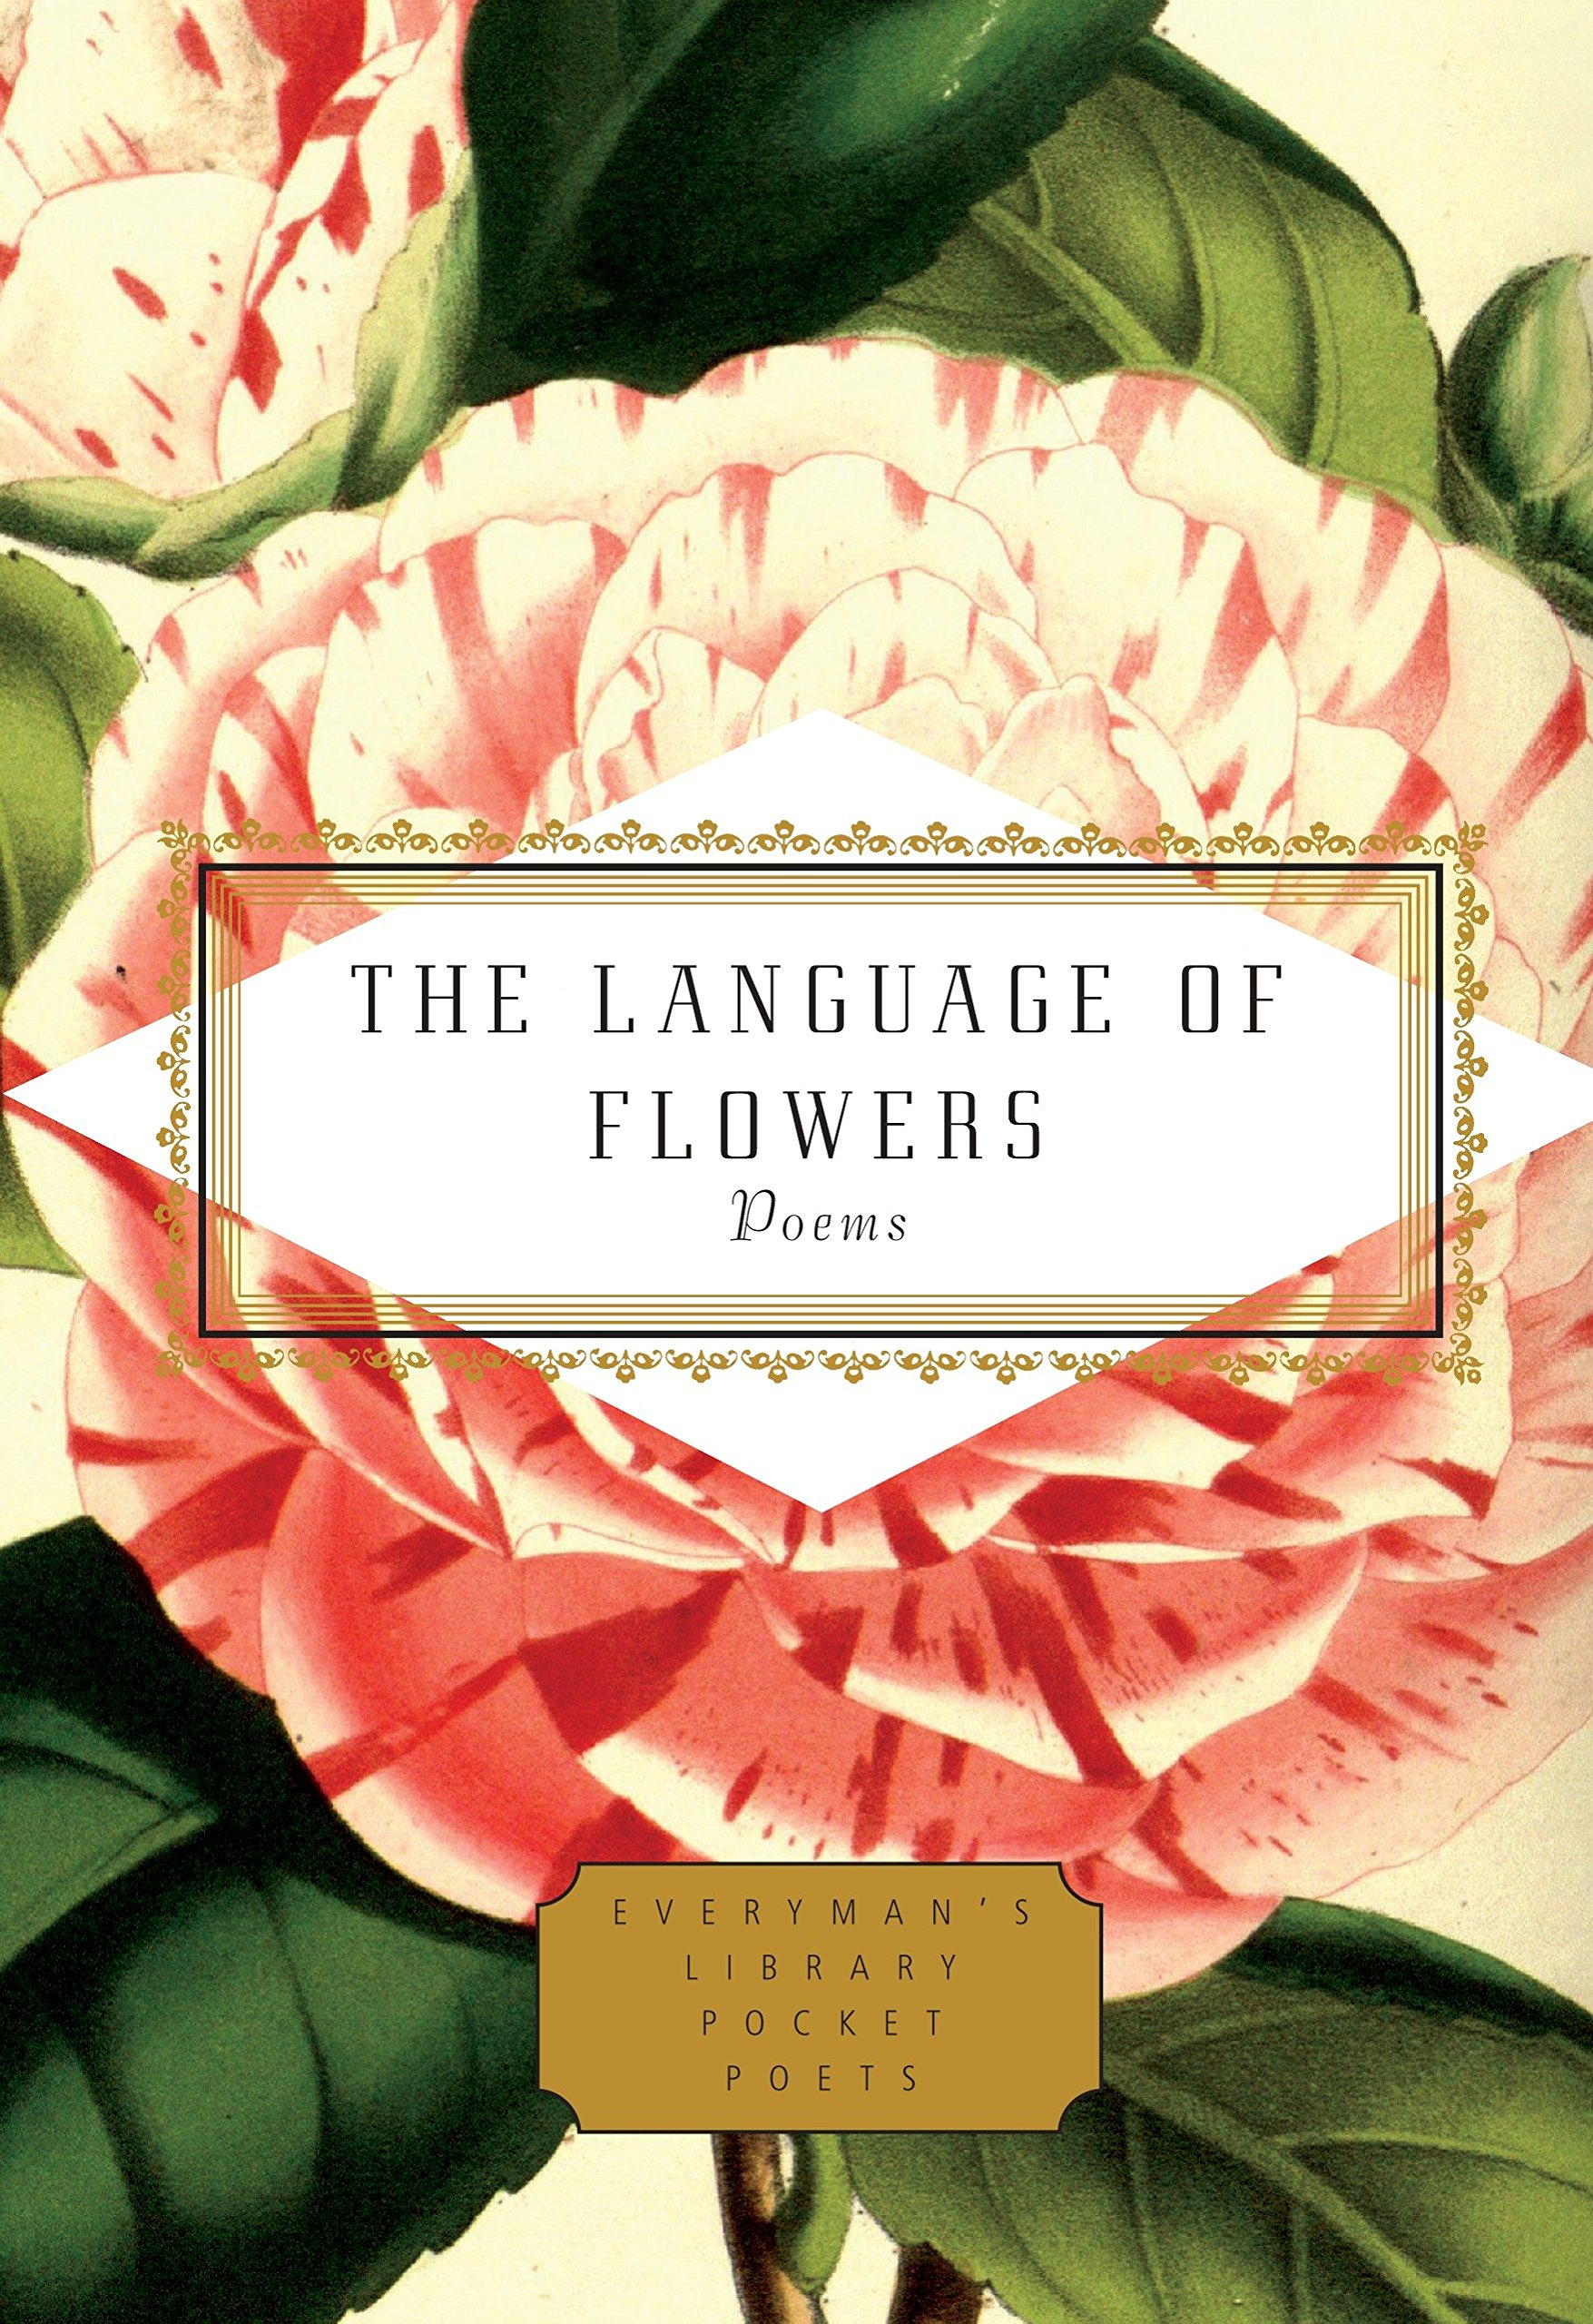 The language of flowers poems everymans library pocket poets the language of flowers poems everymans library pocket poets series jane holloway 9781101907955 amazon books izmirmasajfo